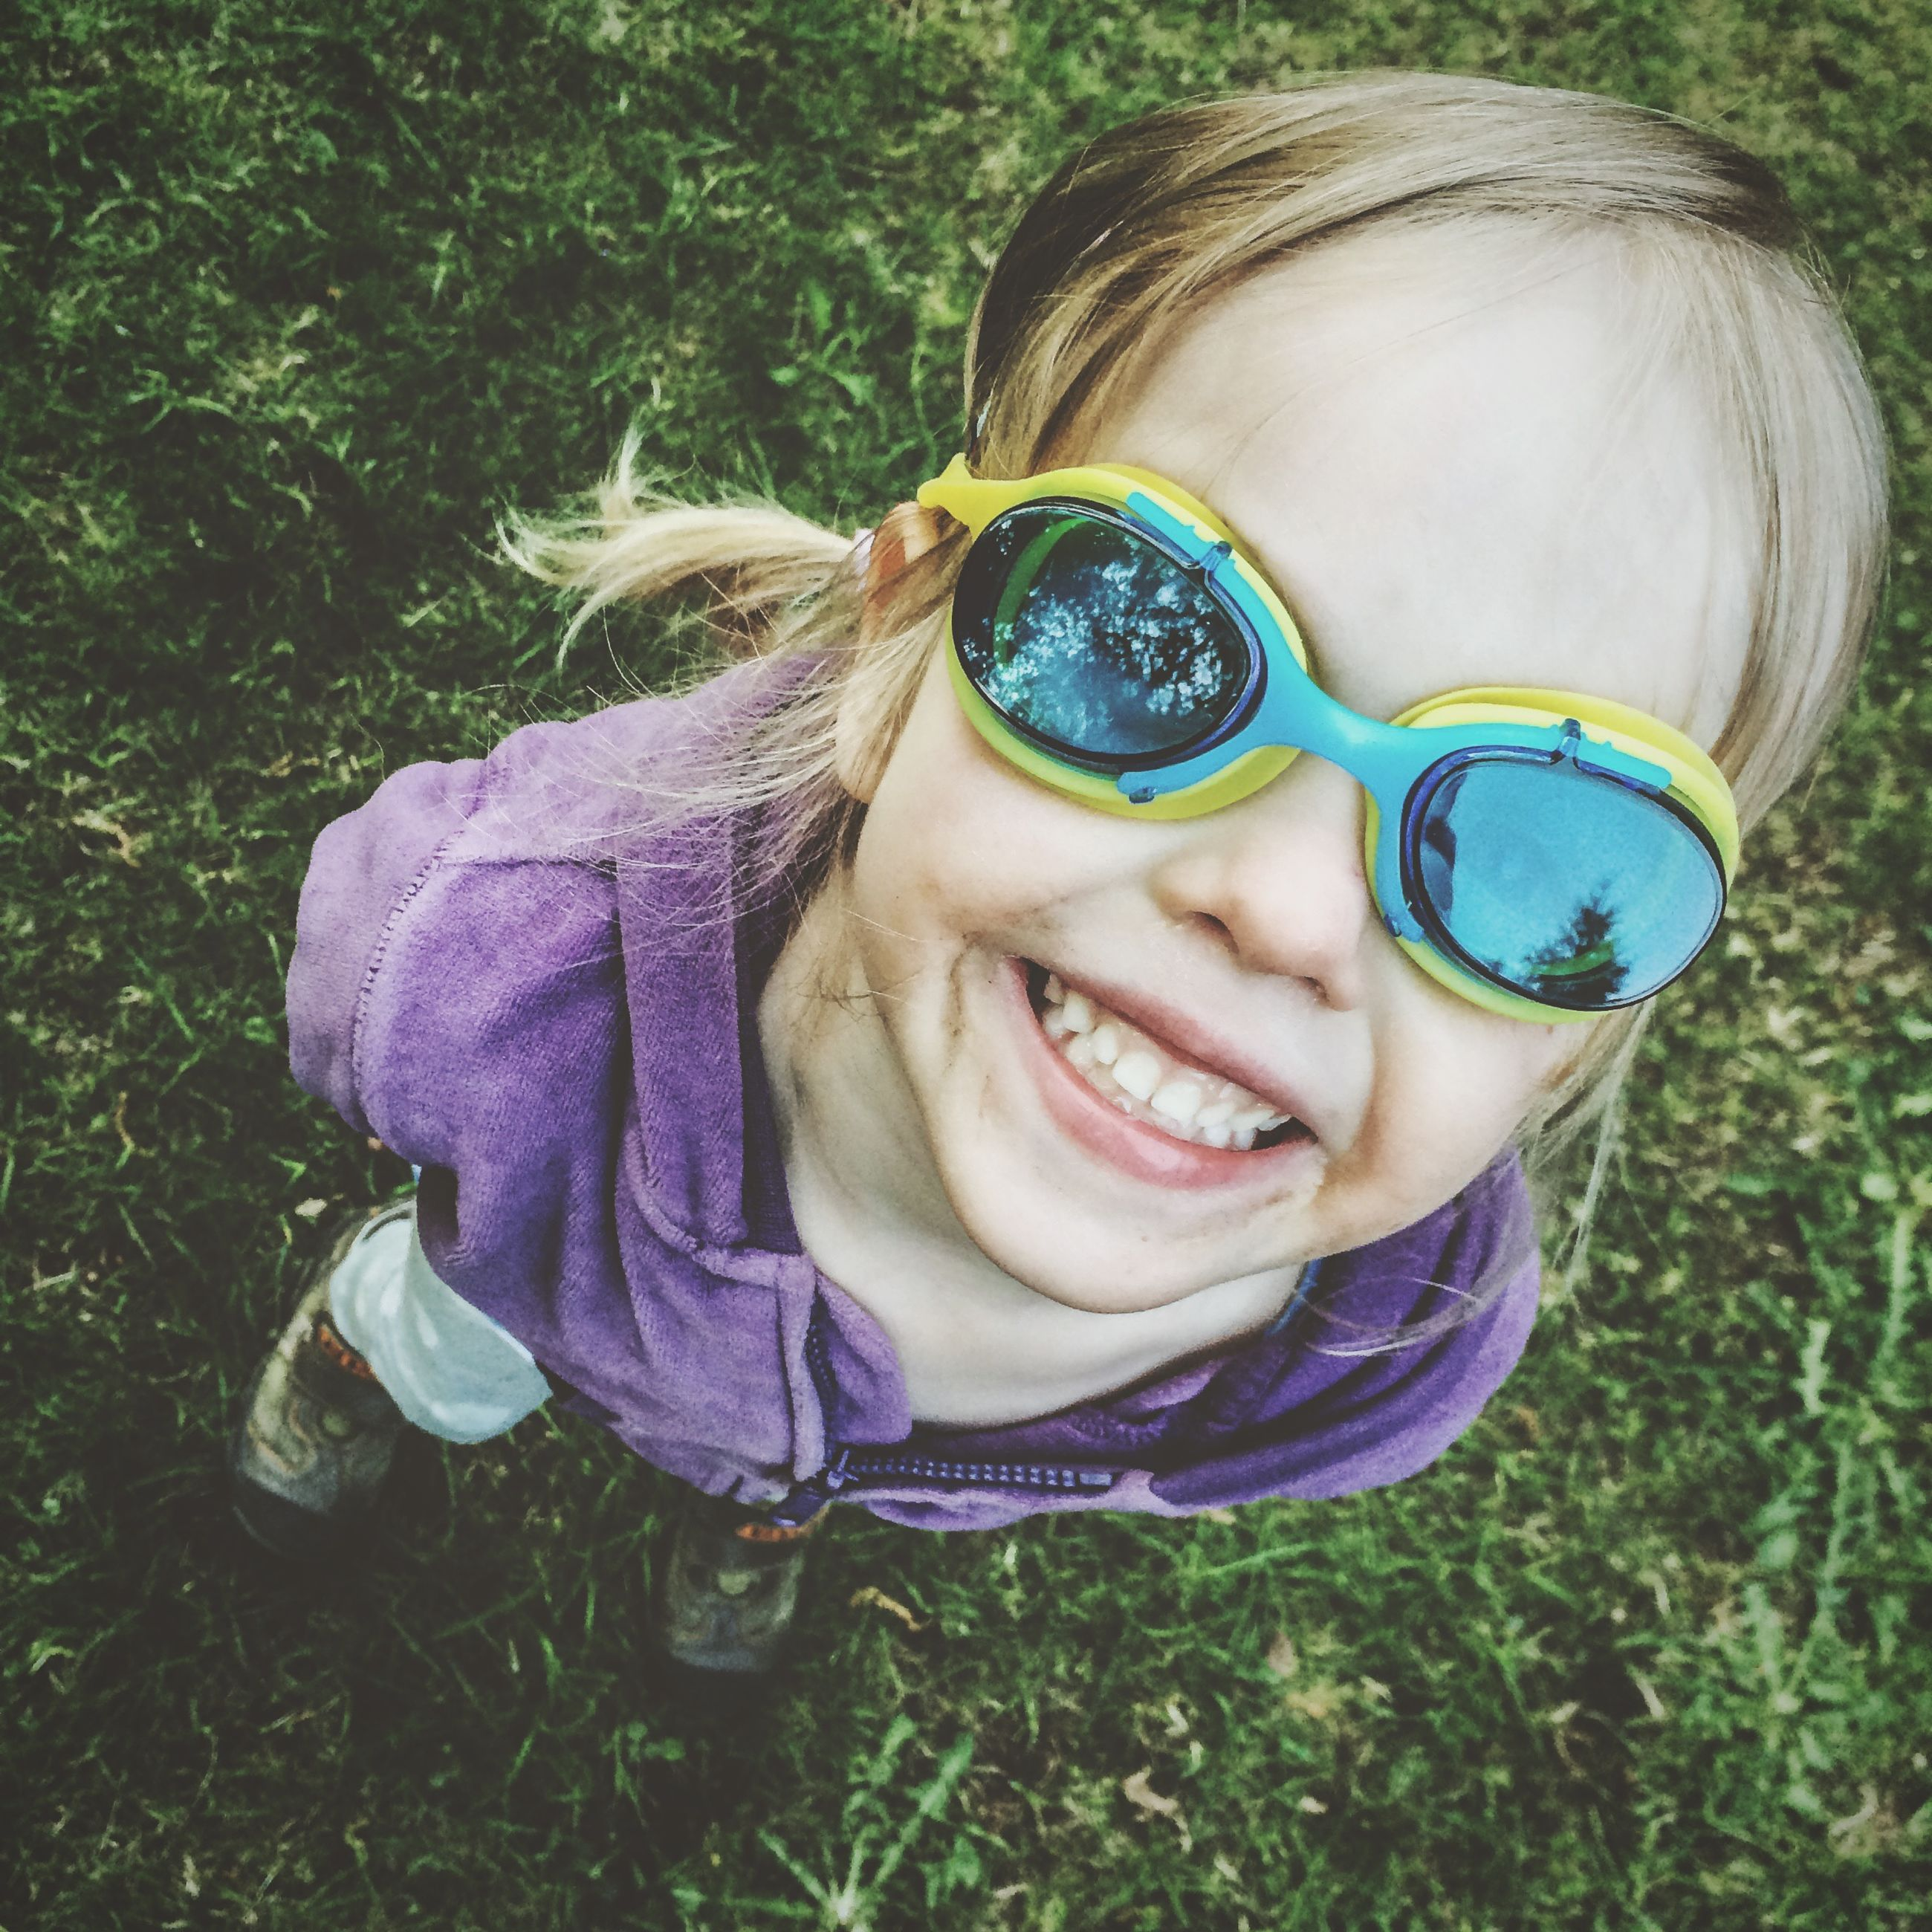 person, looking at camera, portrait, childhood, smiling, lifestyles, leisure activity, elementary age, front view, innocence, happiness, cute, grass, headshot, girls, sunglasses, casual clothing, young adult